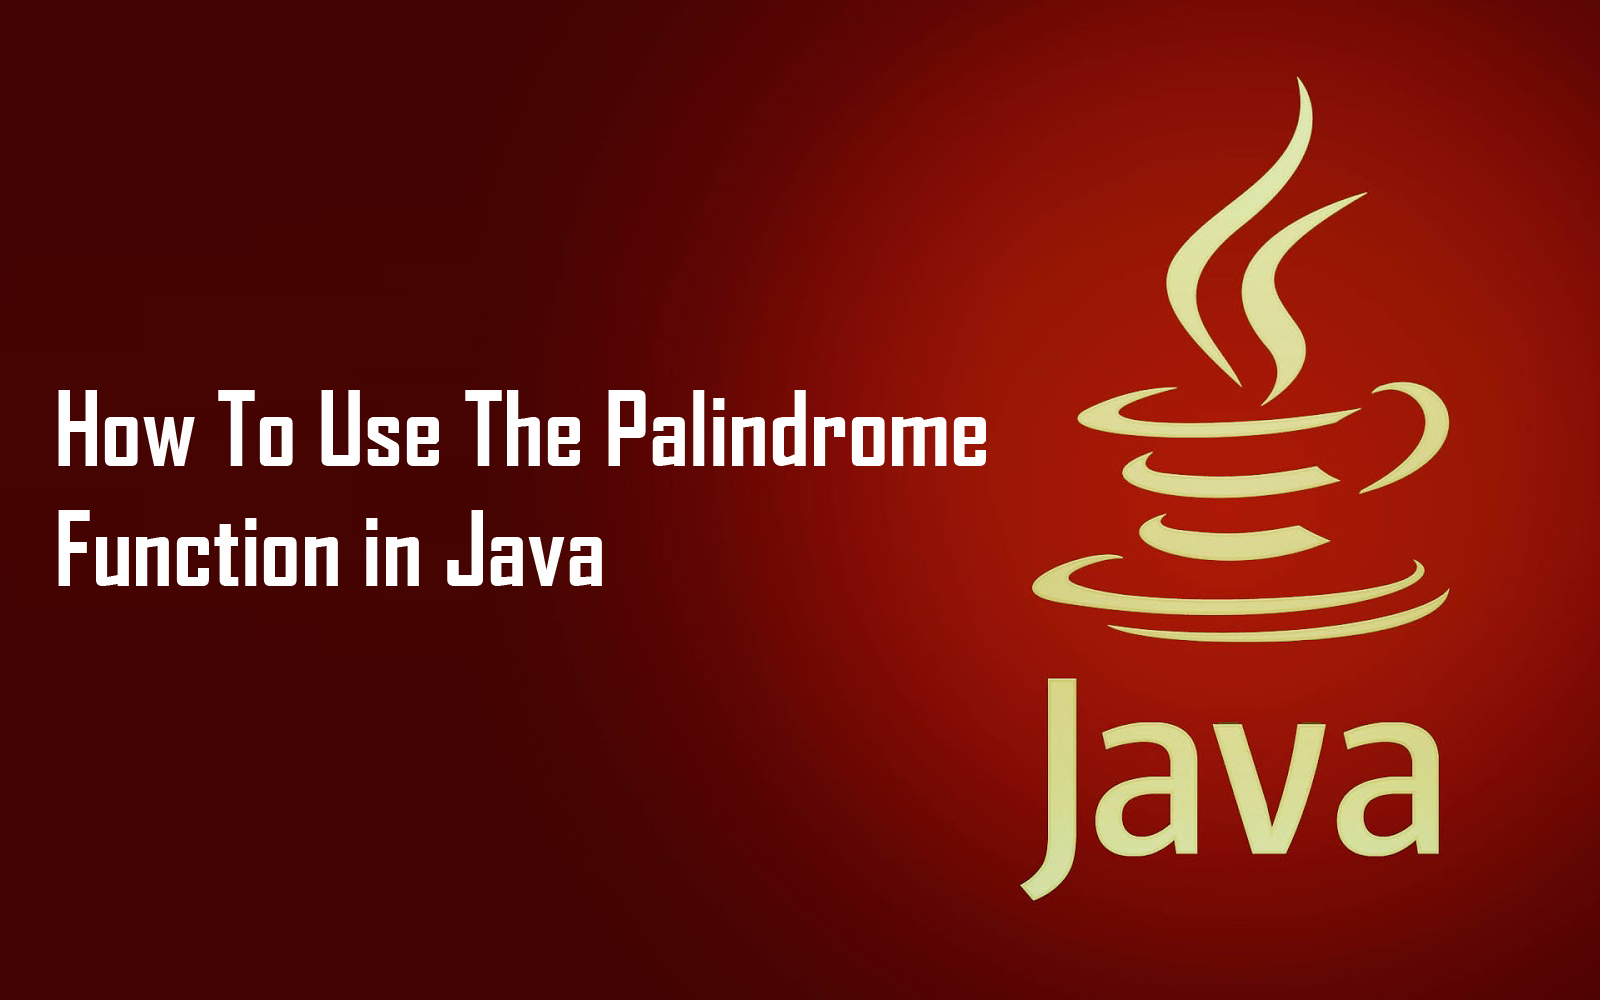 How To Use The Palindrome Function in Java